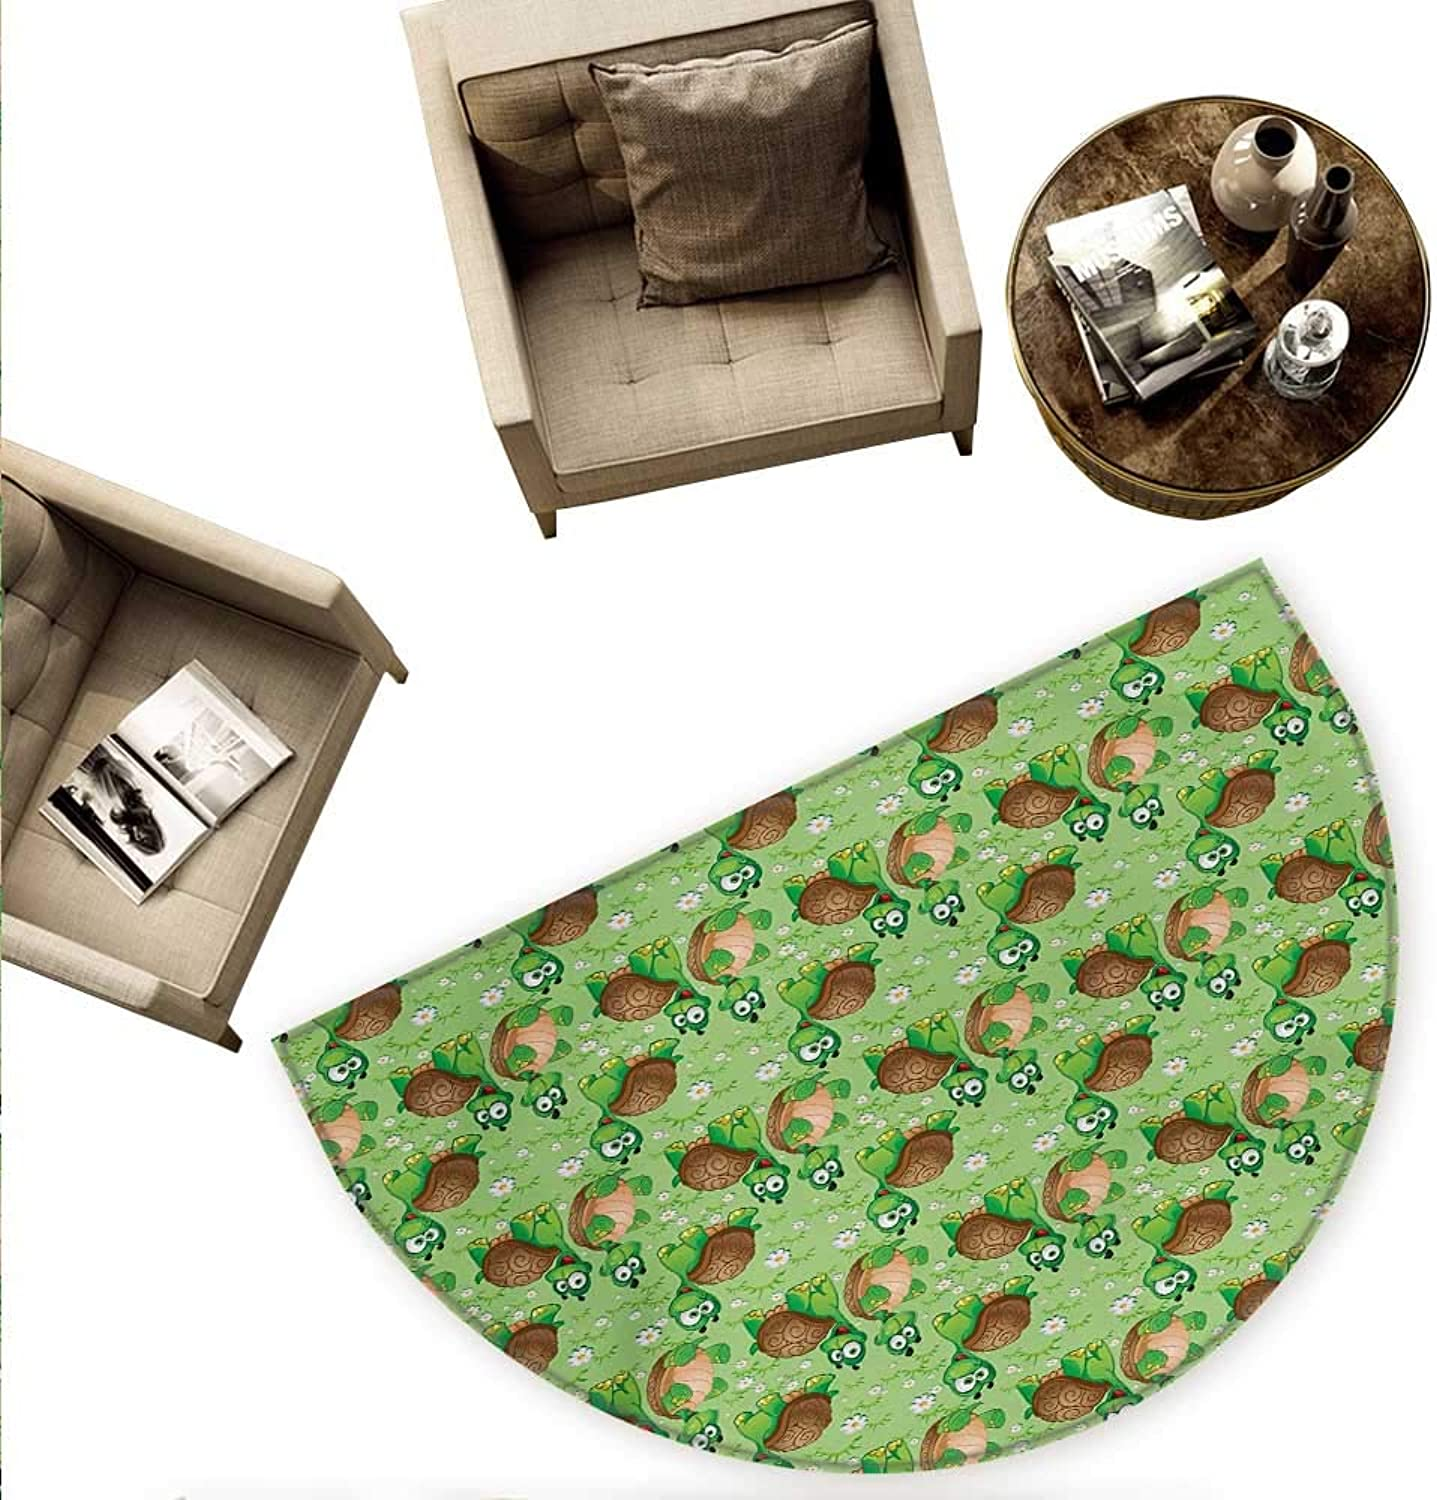 Nursery Semicircular Cushion Pattern with Cartoon Funny Turtles on Green Spring Meadow with Daisies Entry Door Mat H 55.1  xD 82.6  Green Brown Sand Brown